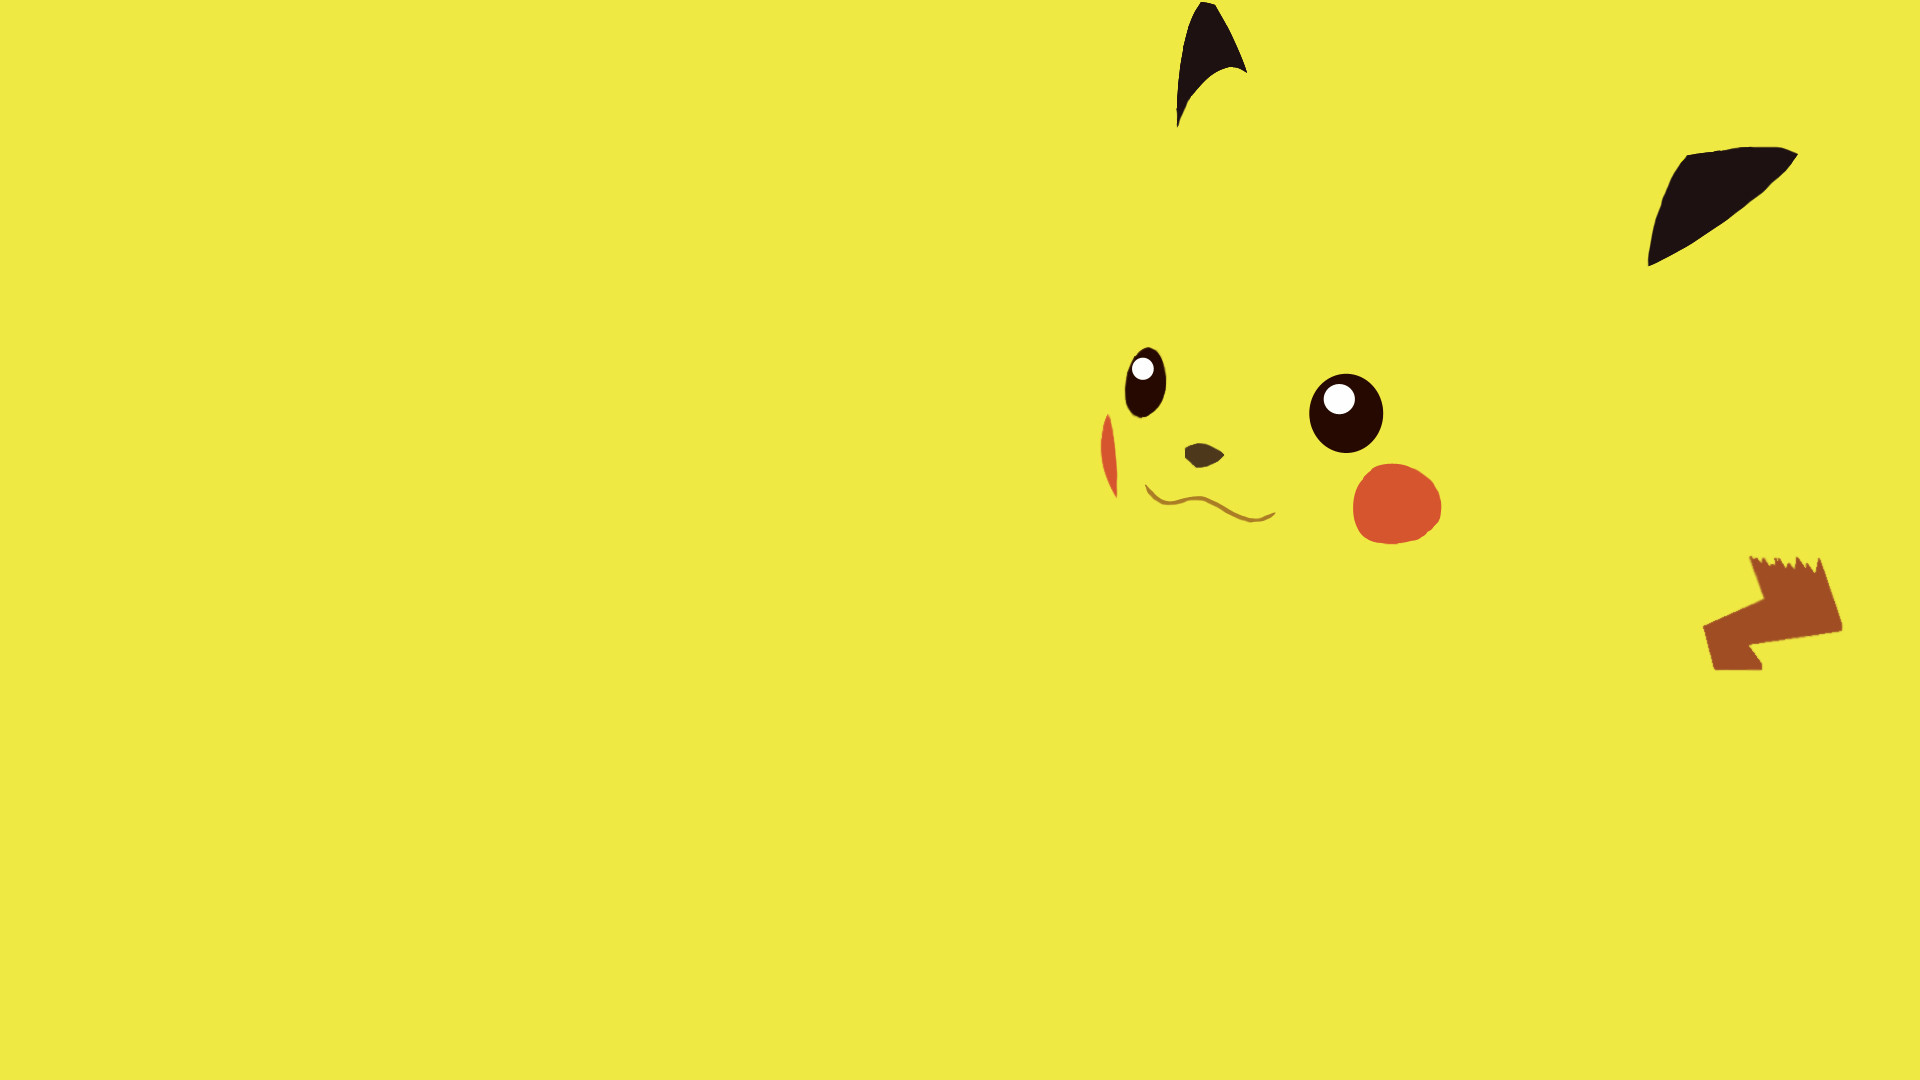 1920x1080 Pokemon Wallpaper Hd Pikachu jpg x desktop wallpaper 143403